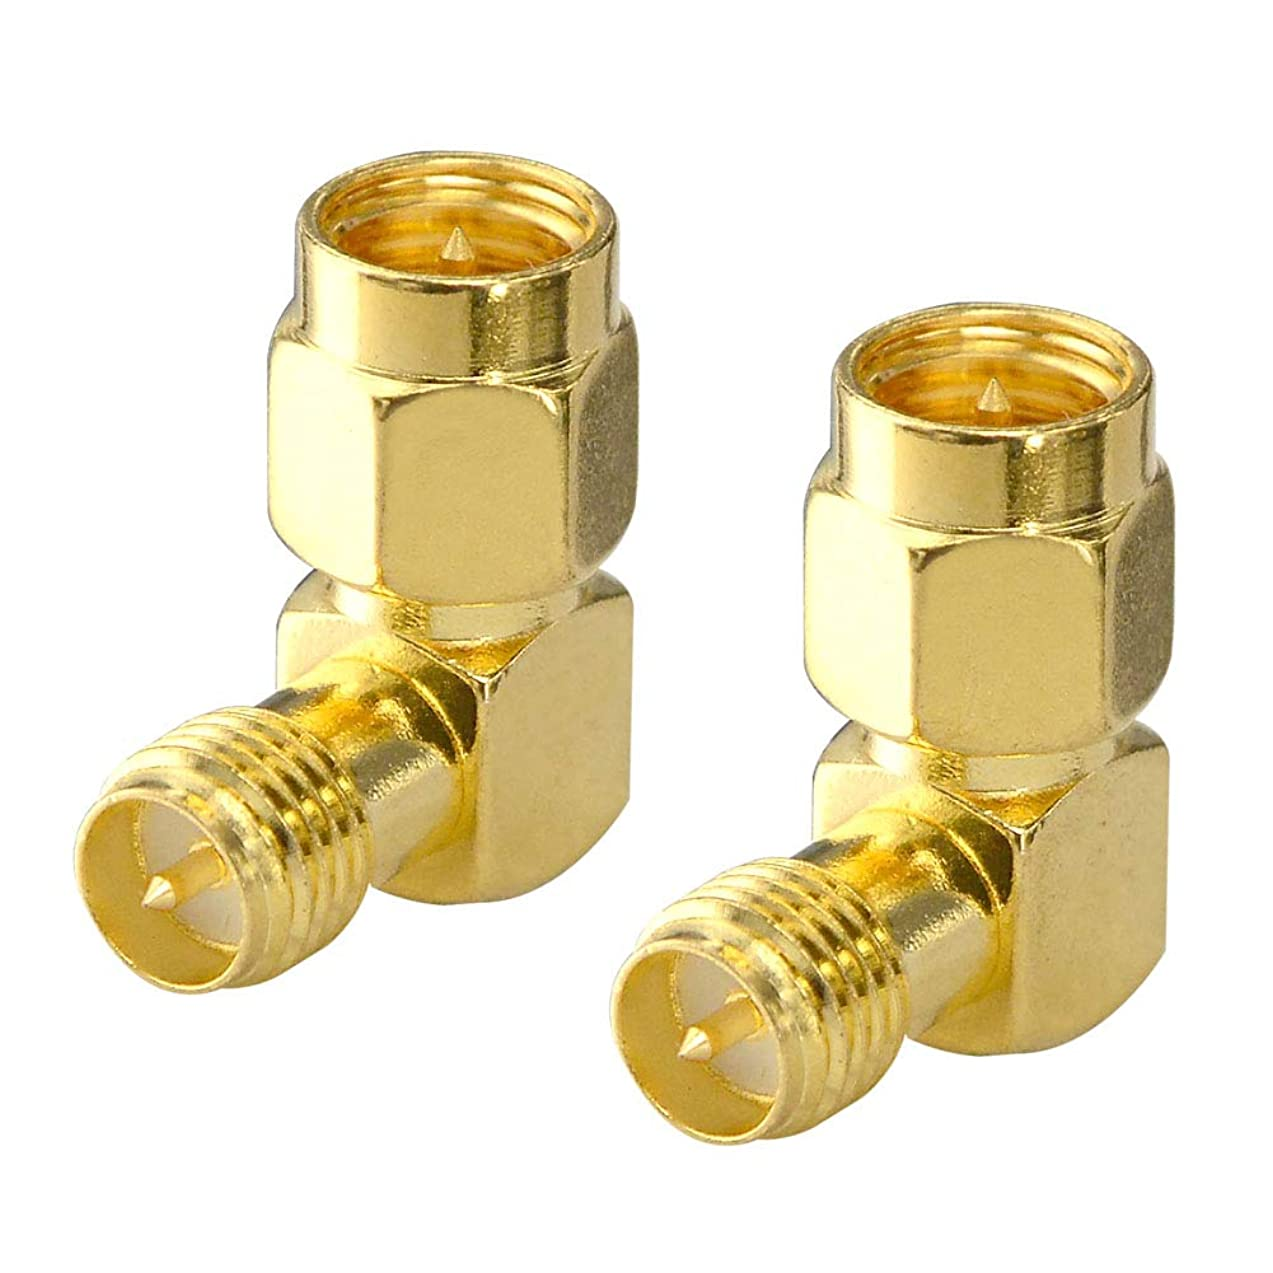 FPV Antenna Adapter SMA Male to Reverse Polarity SMA Female Right Angle 90-Degree Adapter Gold Plated Contacts Converter for WiFi Antenna/FPV Drone/Extension Cable Pack of 2